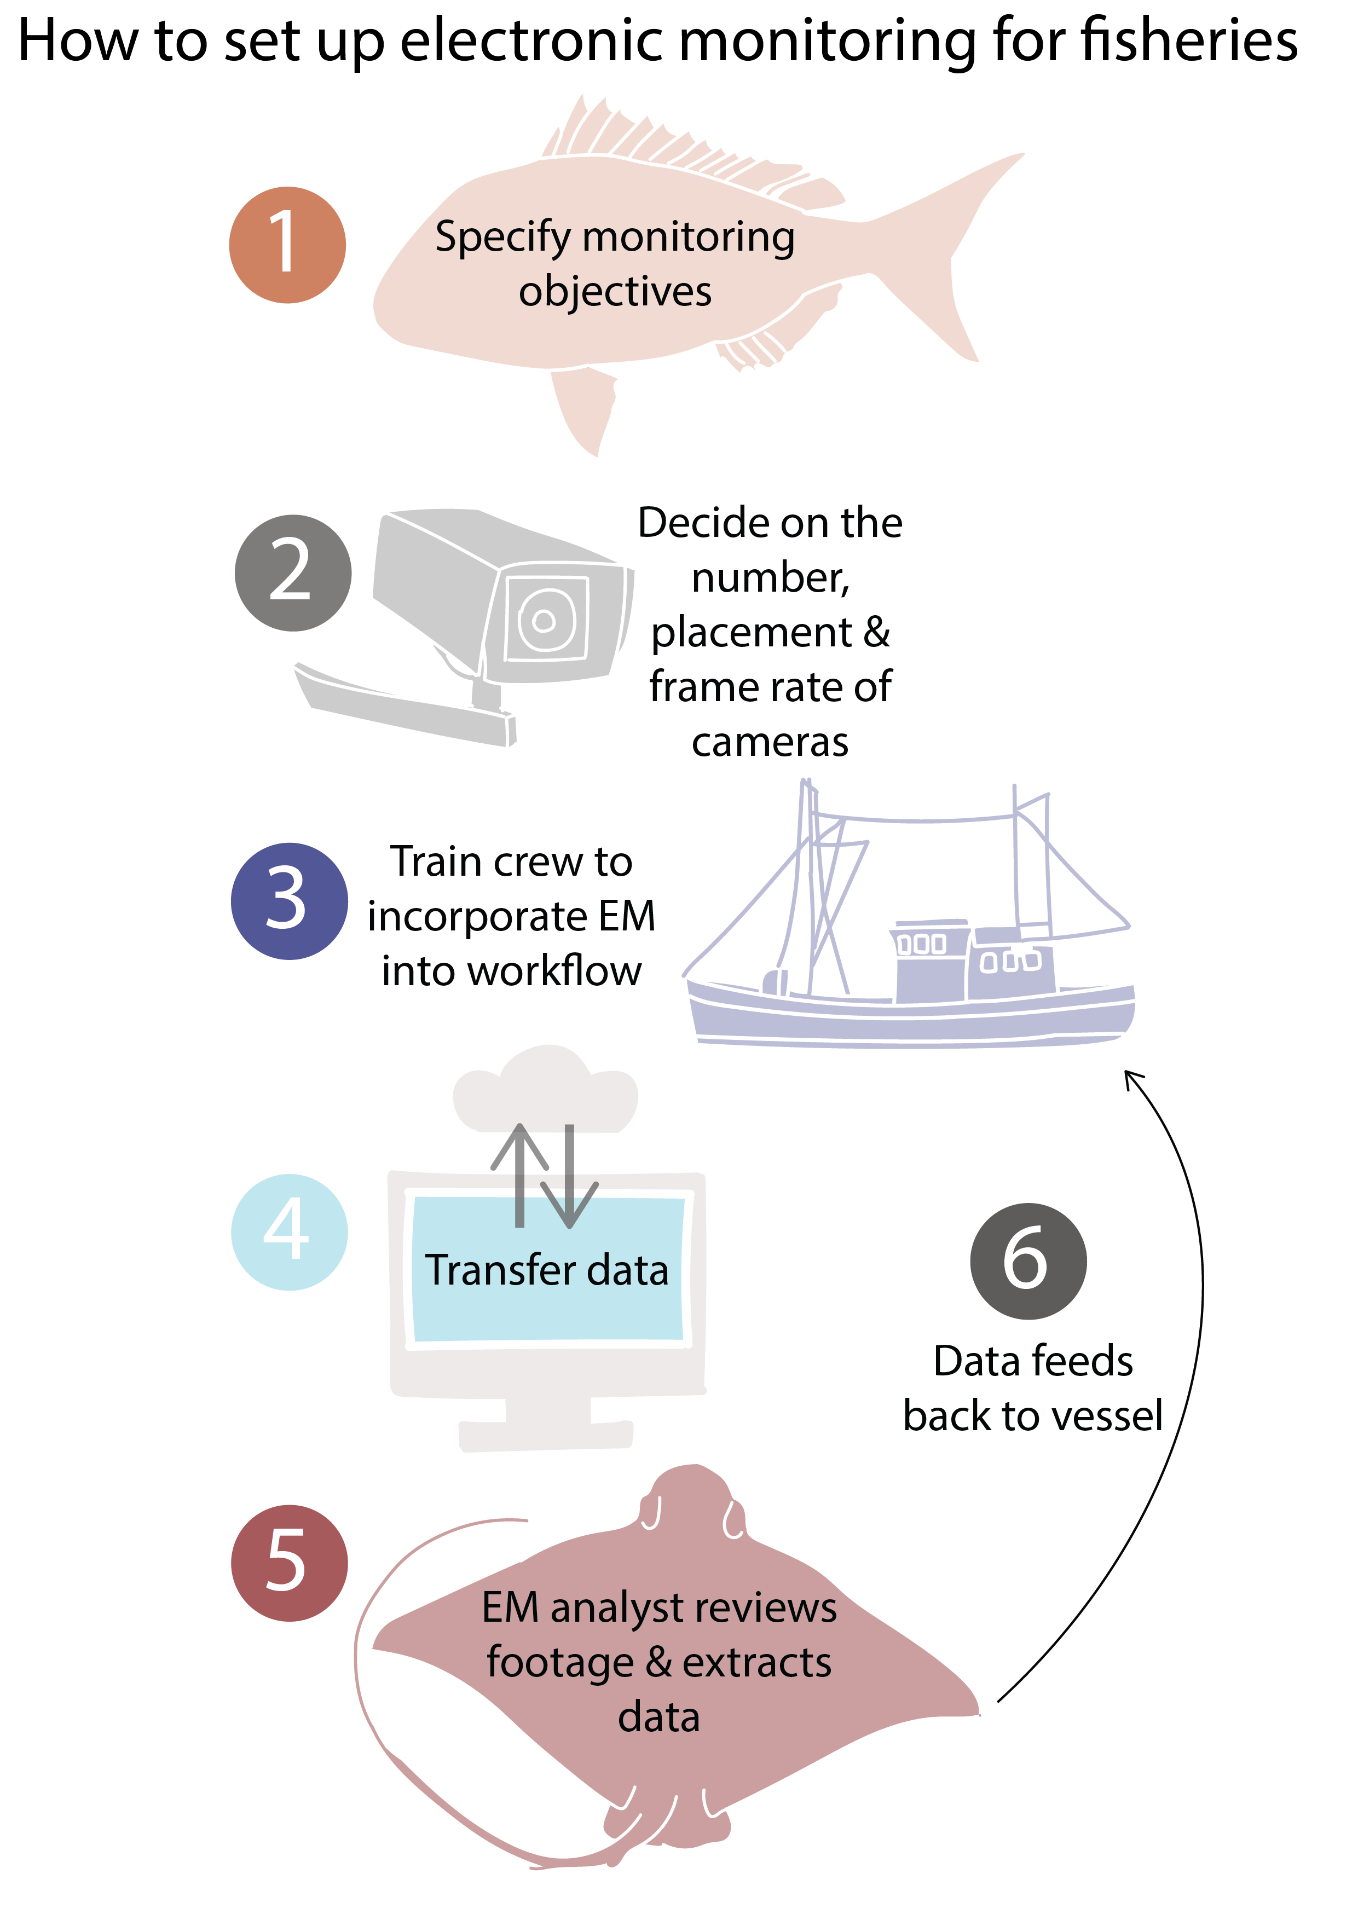 How to set up electronic monitoring for fisehries: 1) Specify monitoring objectives, 2) Decide on the number, placement and frame rate of cameras, 3) Train crew to incorporate EM into workflow, 4) Transfer data, 5) EM analyst reviews footage and extracts data, 6) data feeds back to vessel.